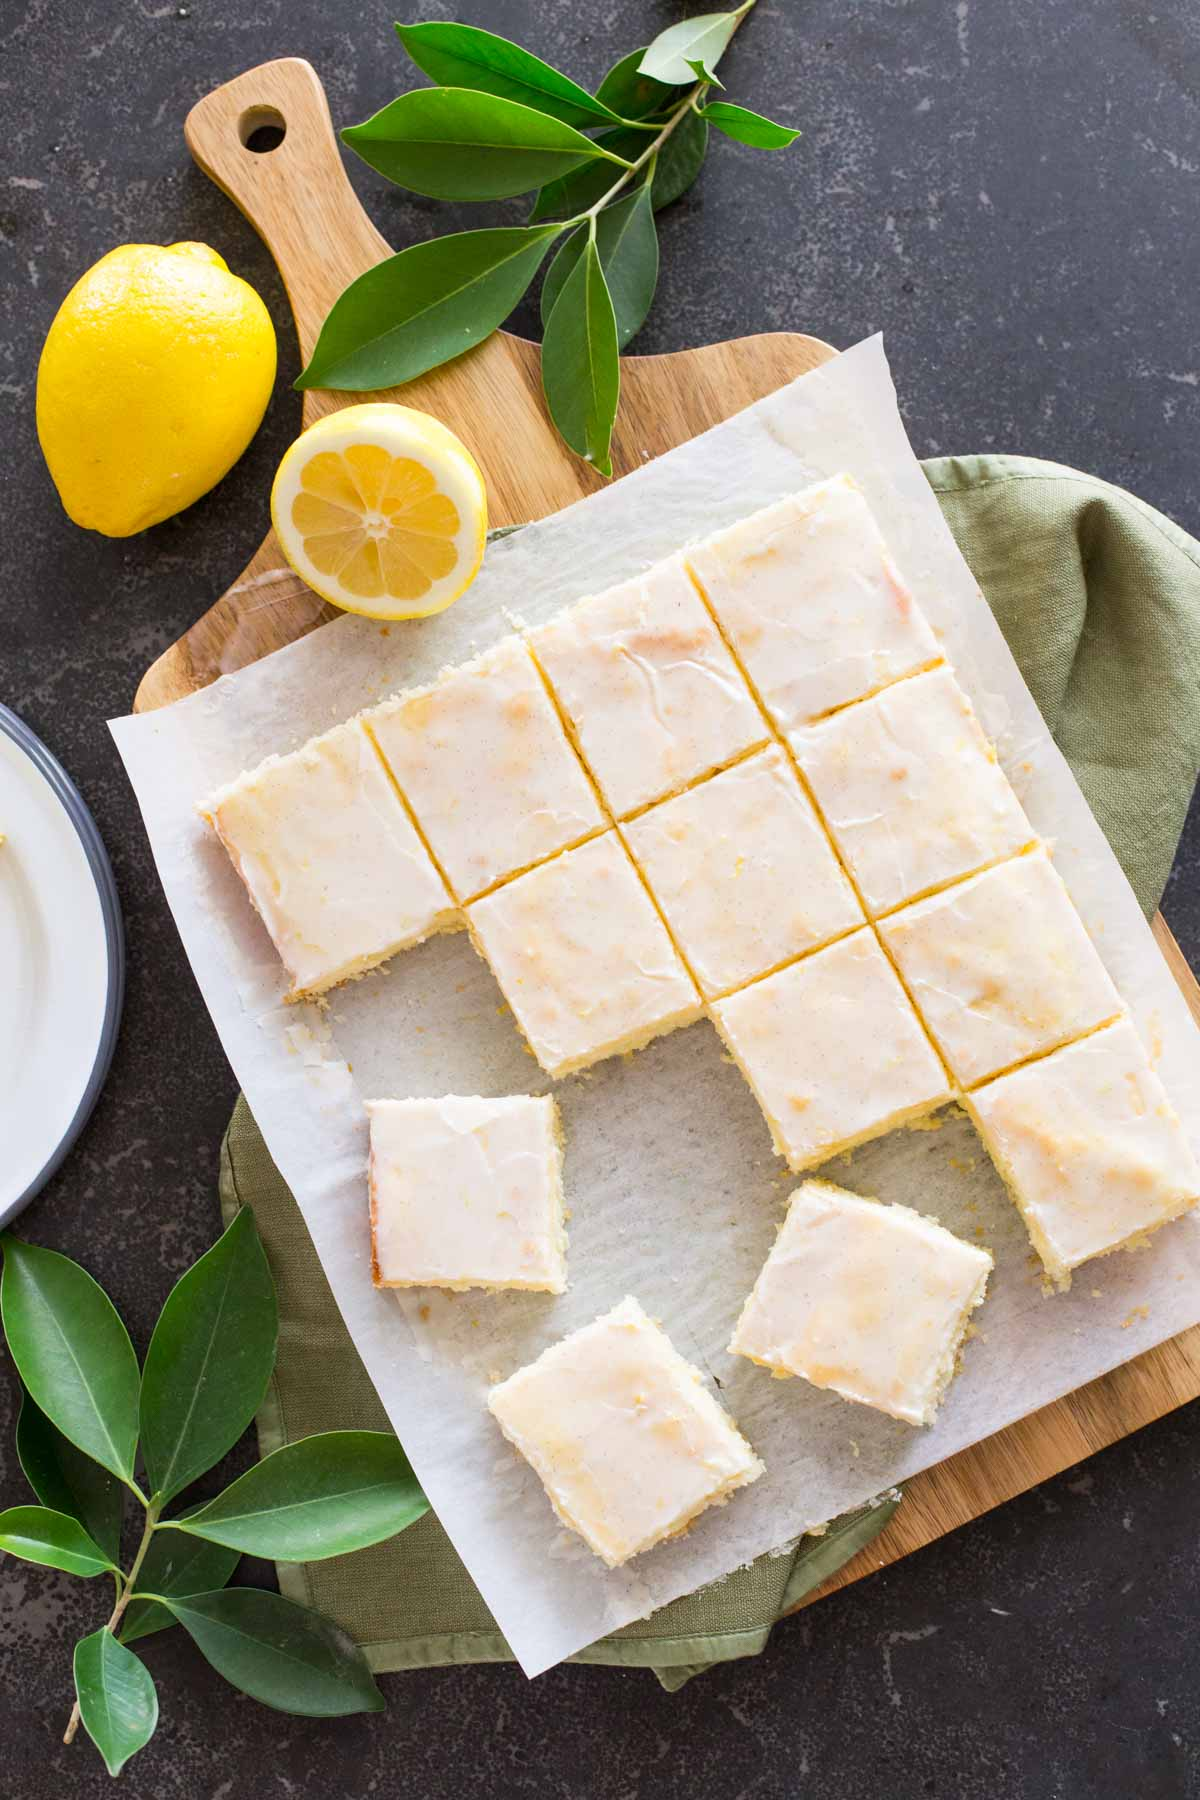 Vanilla Bean Lemon Bars cut into squares on parchment paper on top of a cutting board, with lemons and tree leaves next to the board.